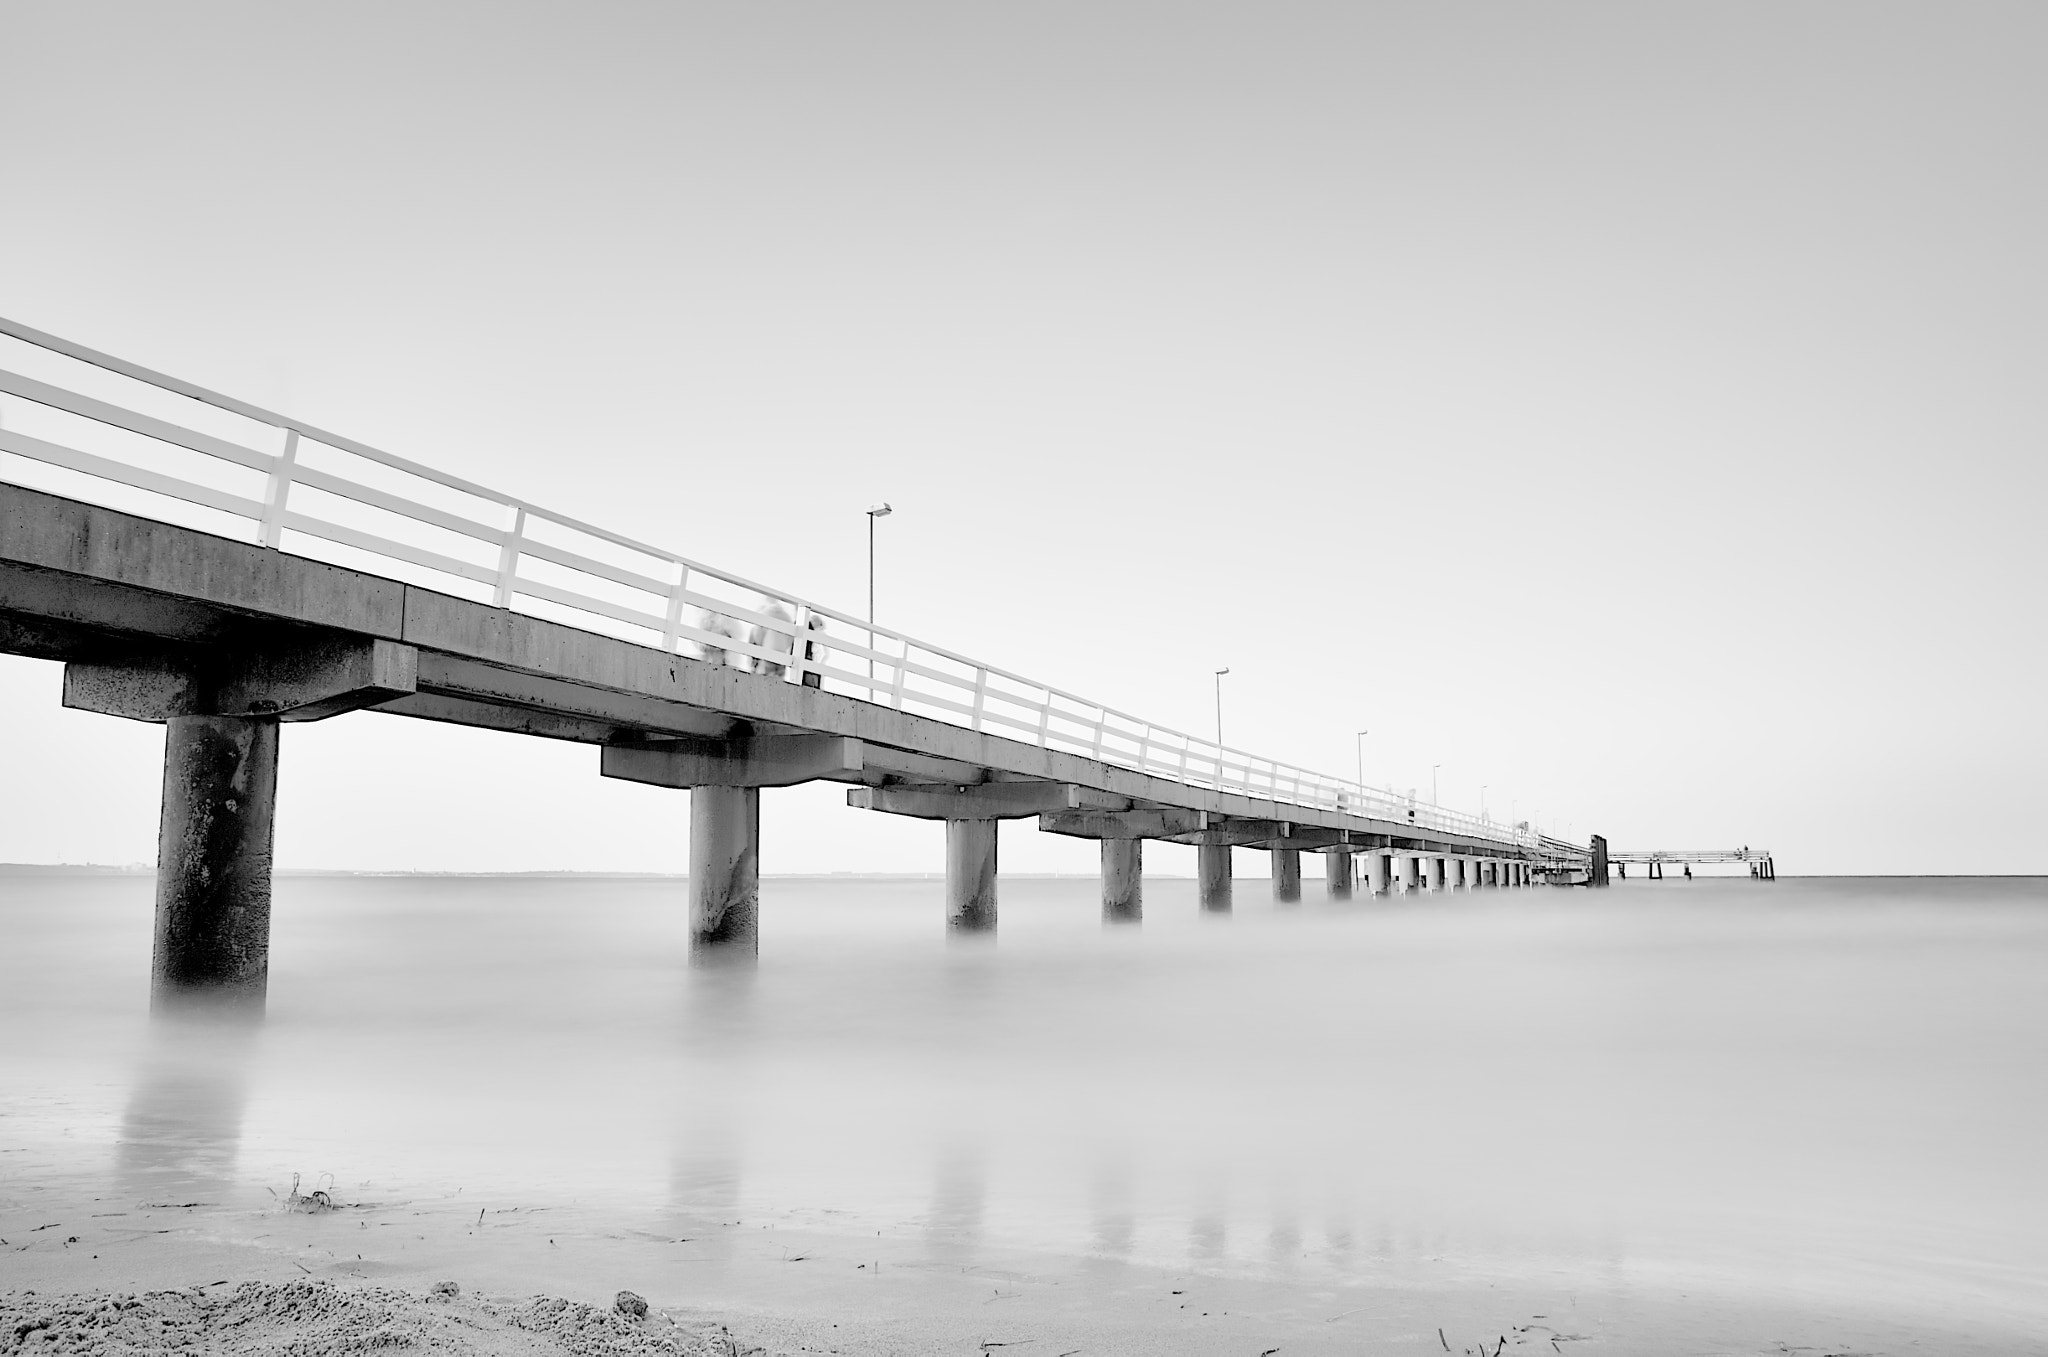 Photograph Pier by Cécile Gall on 500px